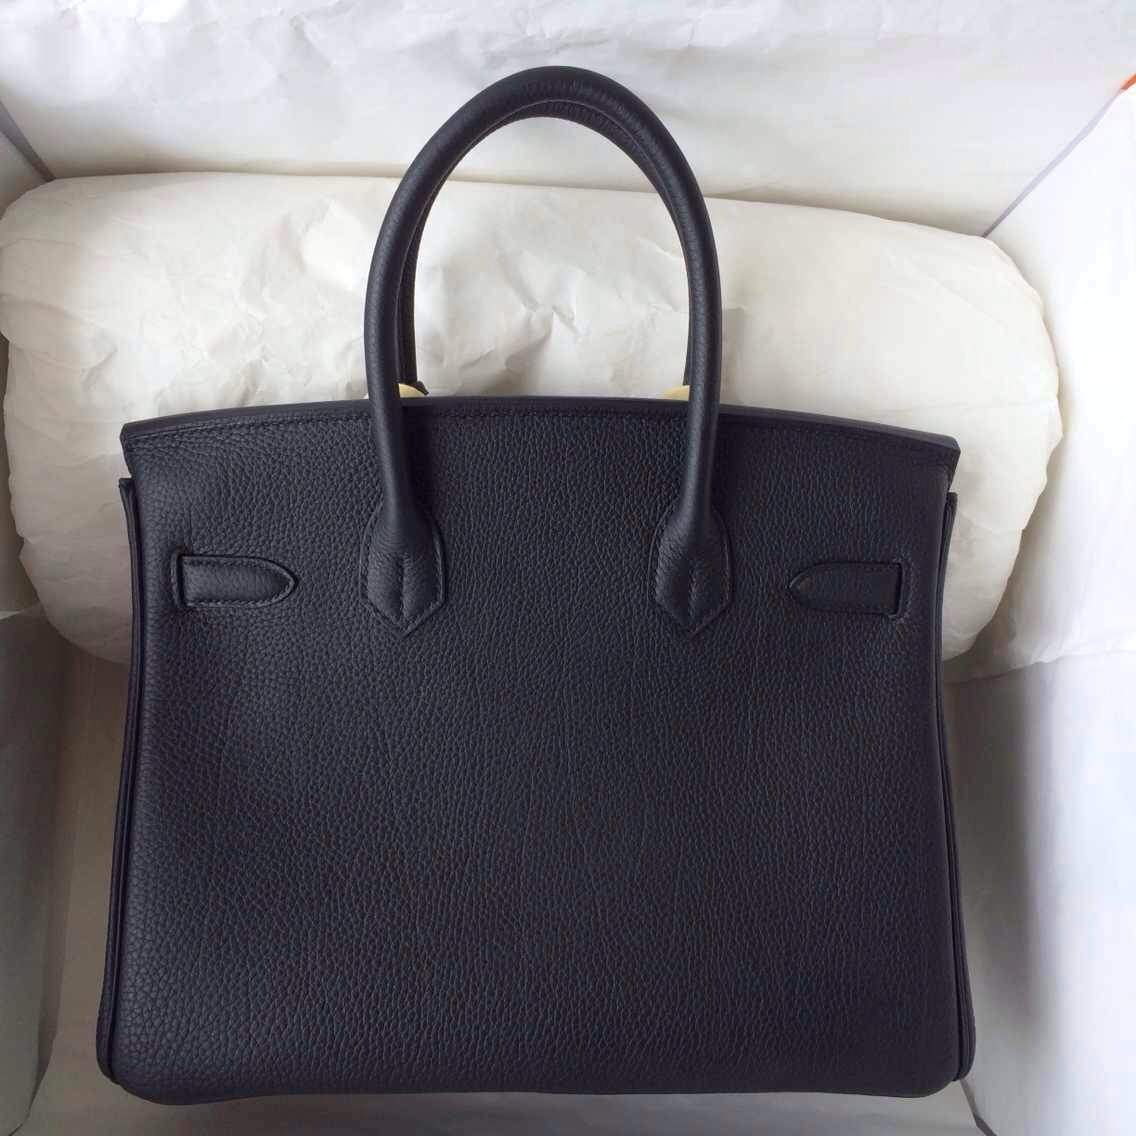 89 Black France Togo Leather Hermes Birkin30cm Gold/Silver Hardware